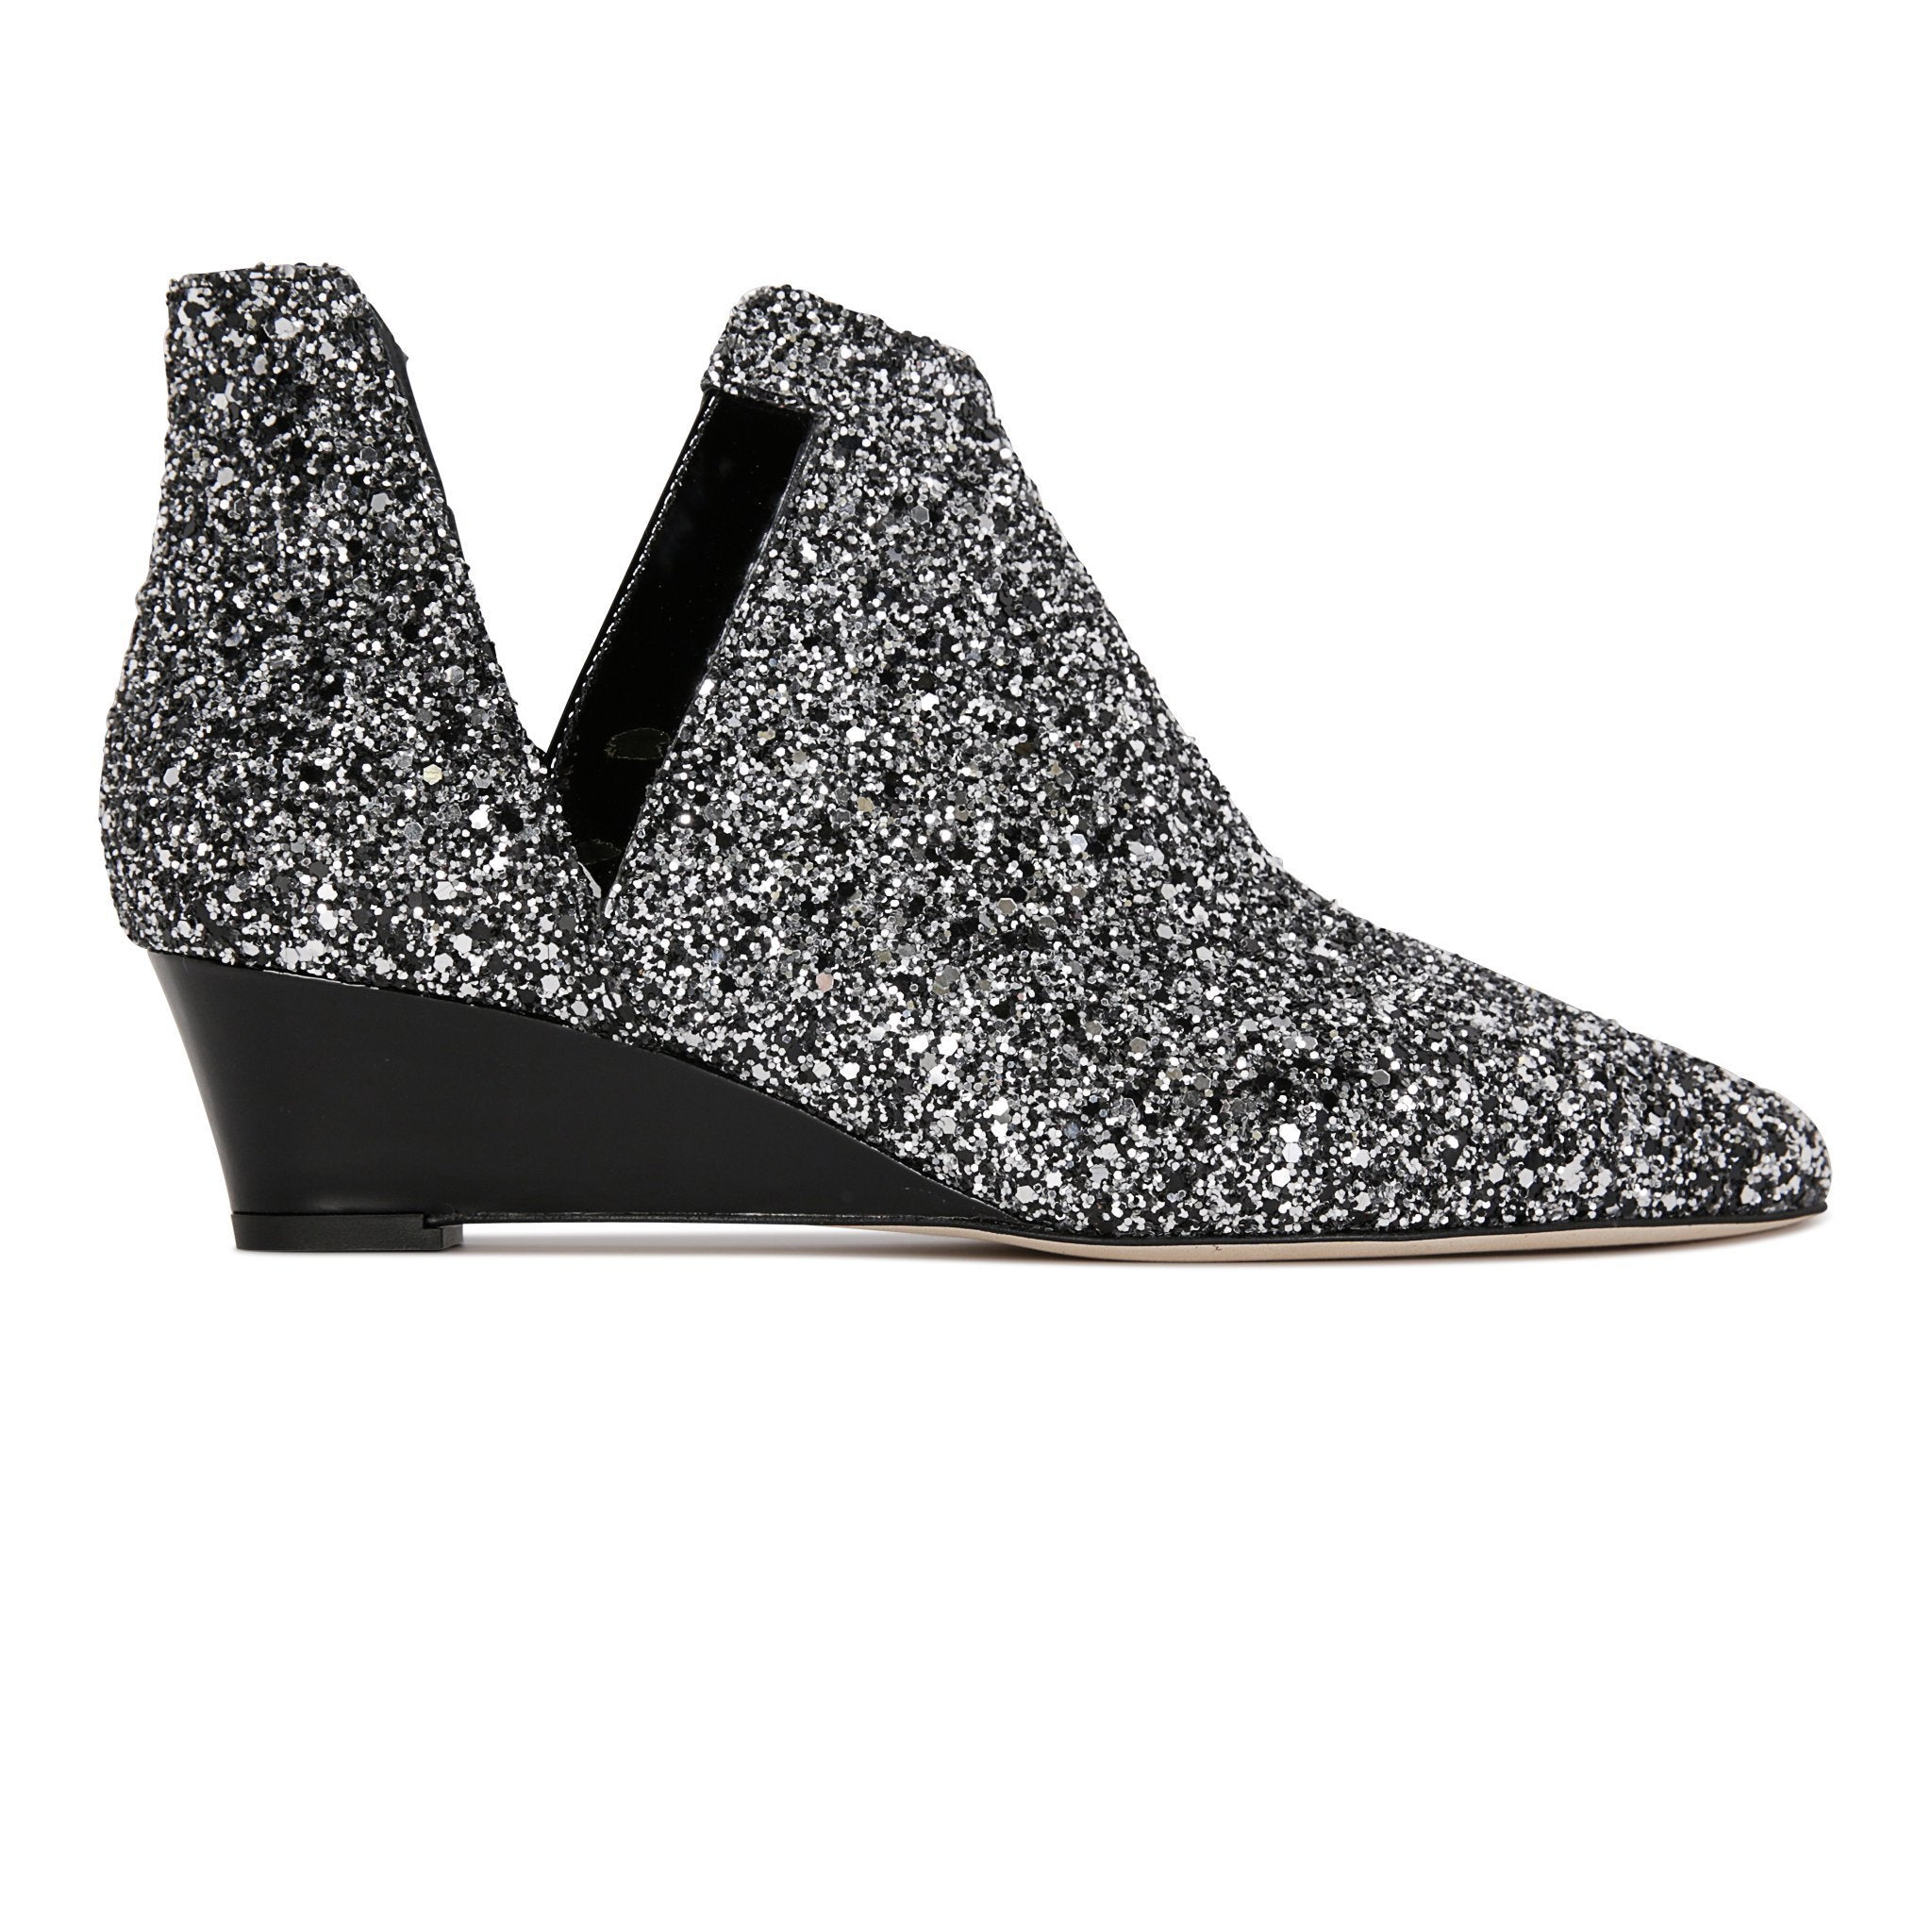 SYRENE - Glitter Notte + Patent Nero, VIAJIYU - Women's Hand Made Sustainable Luxury Shoes. Made in Italy. Made to Order.